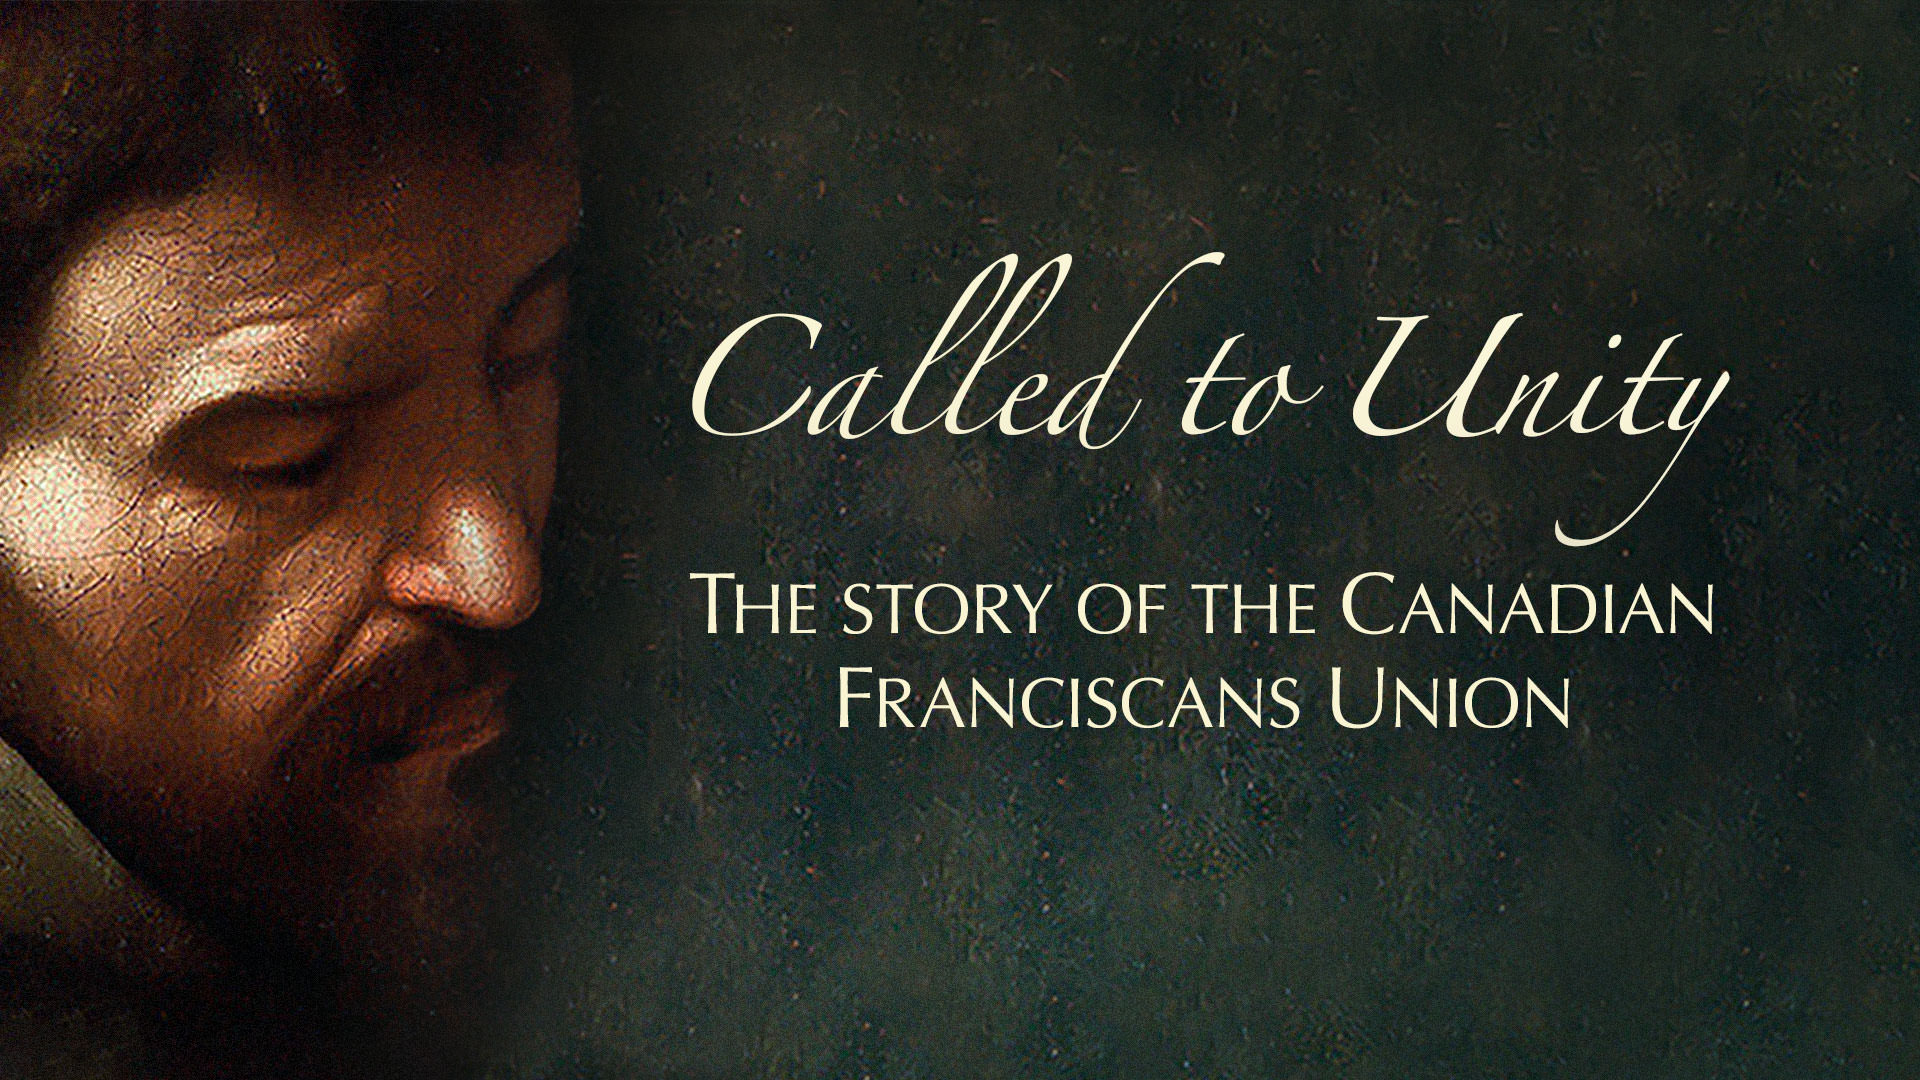 A Salt & Light TV Documentary about the Franciscans!